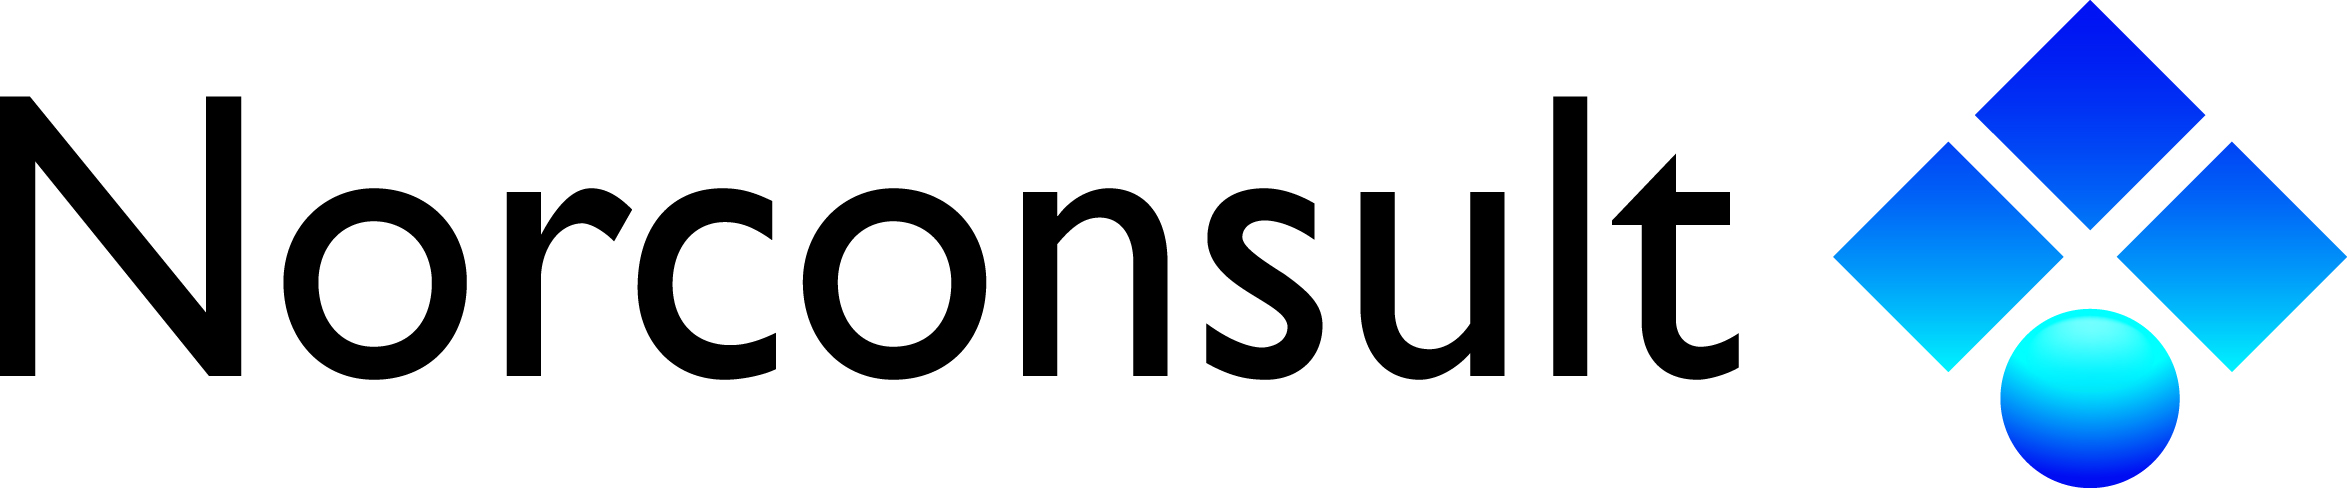 Norconsult logo Norconsult logo - farger colors